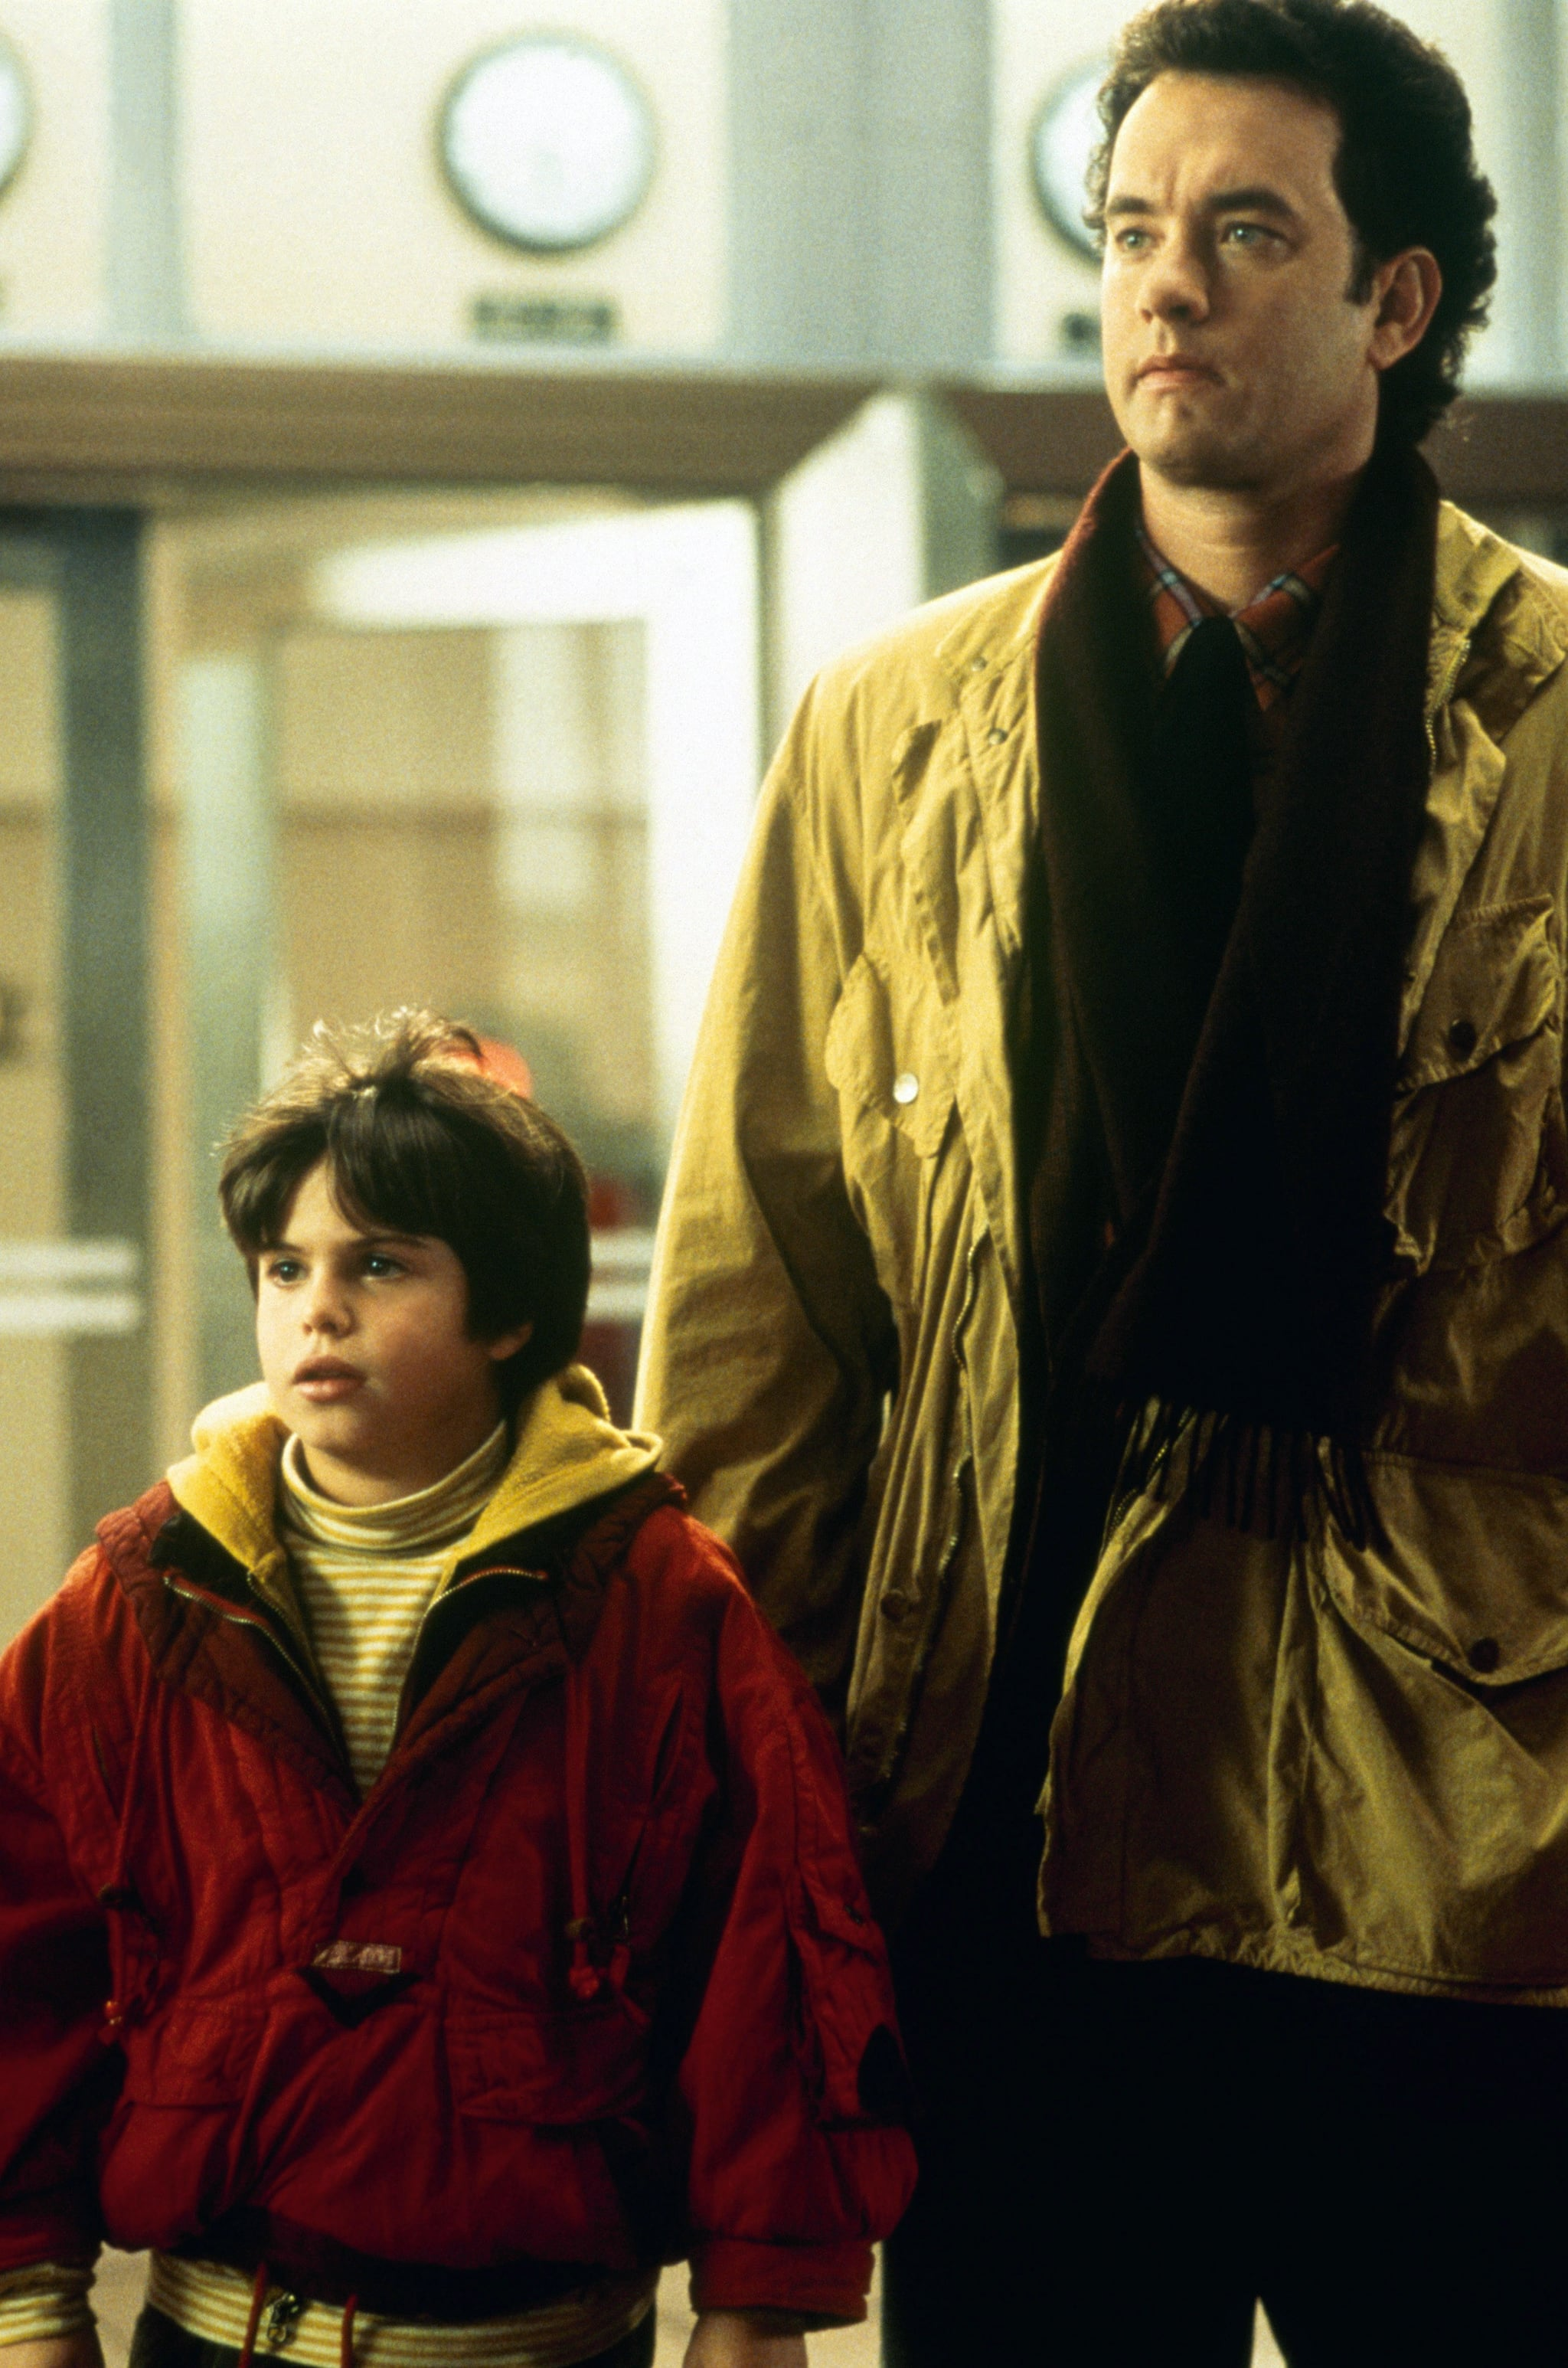 Sleepless In Seattle 1993 144 Of The All Time Best 90s Movies How Many Have You Seen Popsugar Entertainment Photo 2